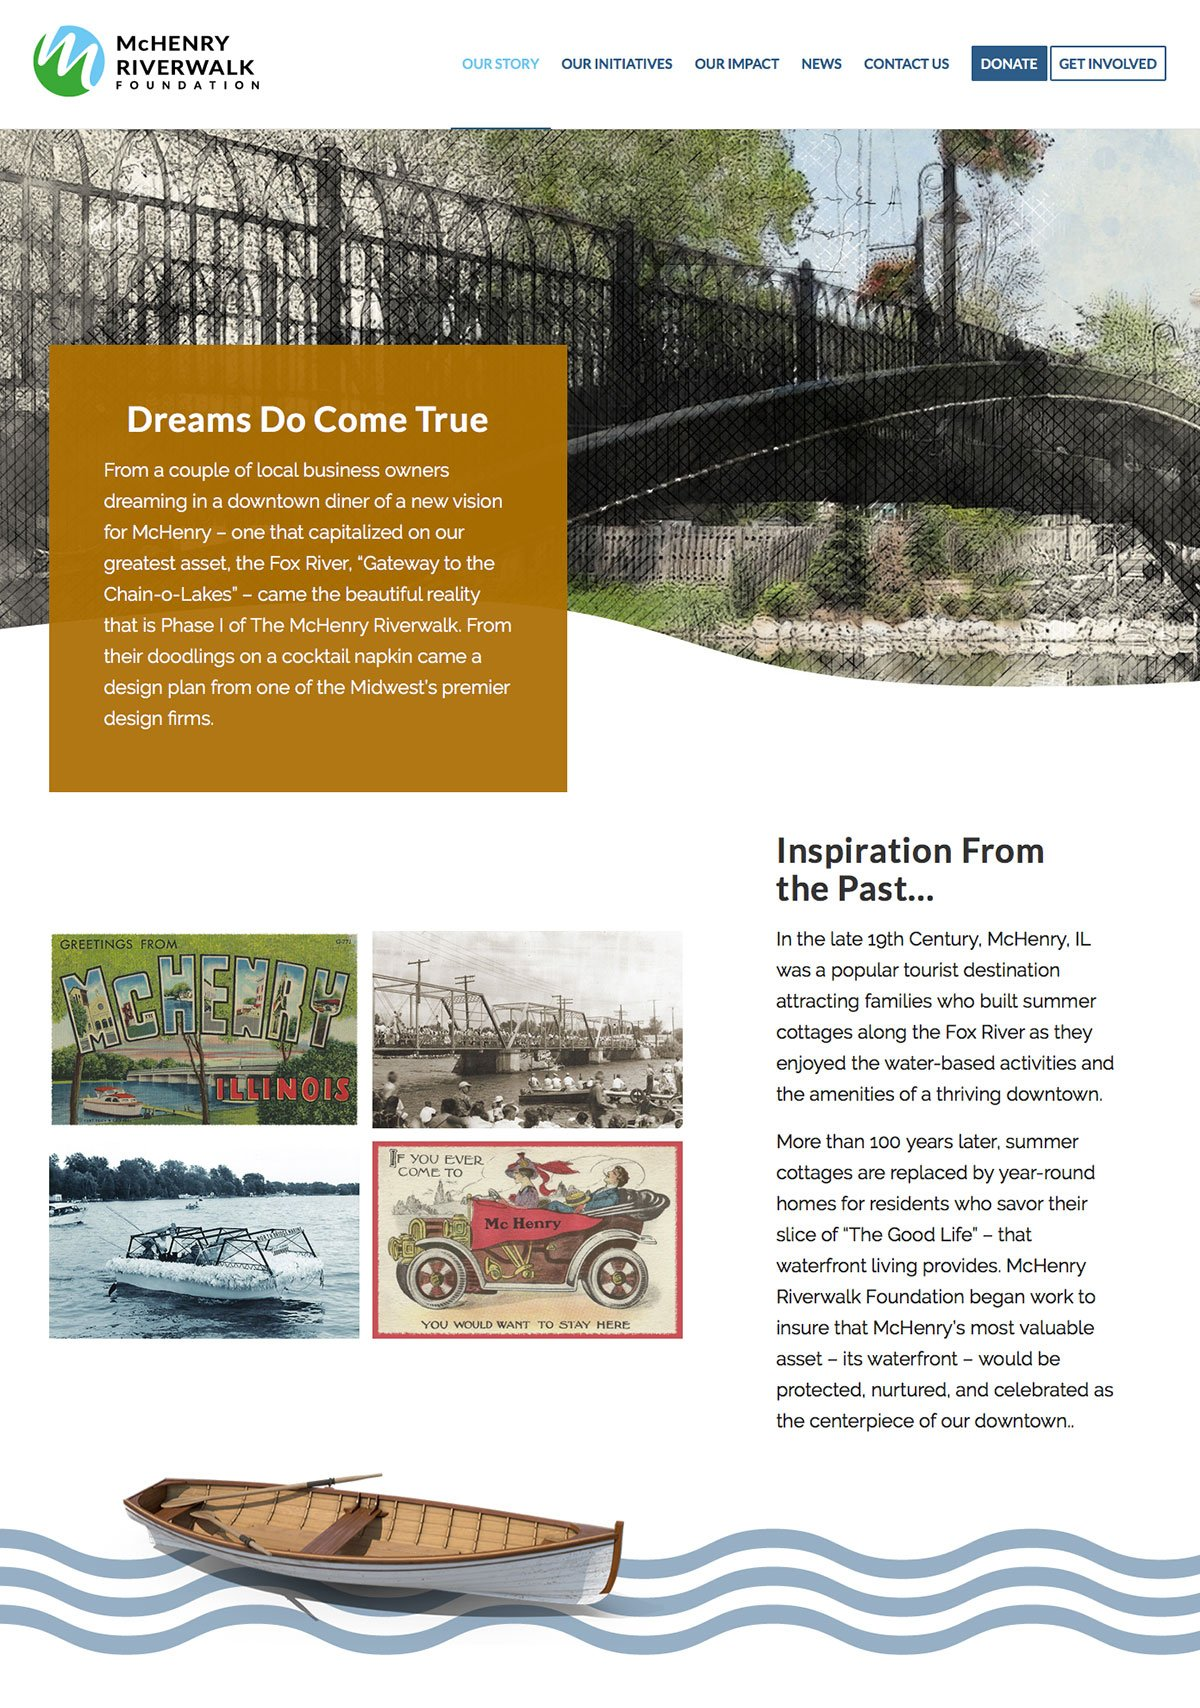 McHenry Riverwalk Foundation Story Page